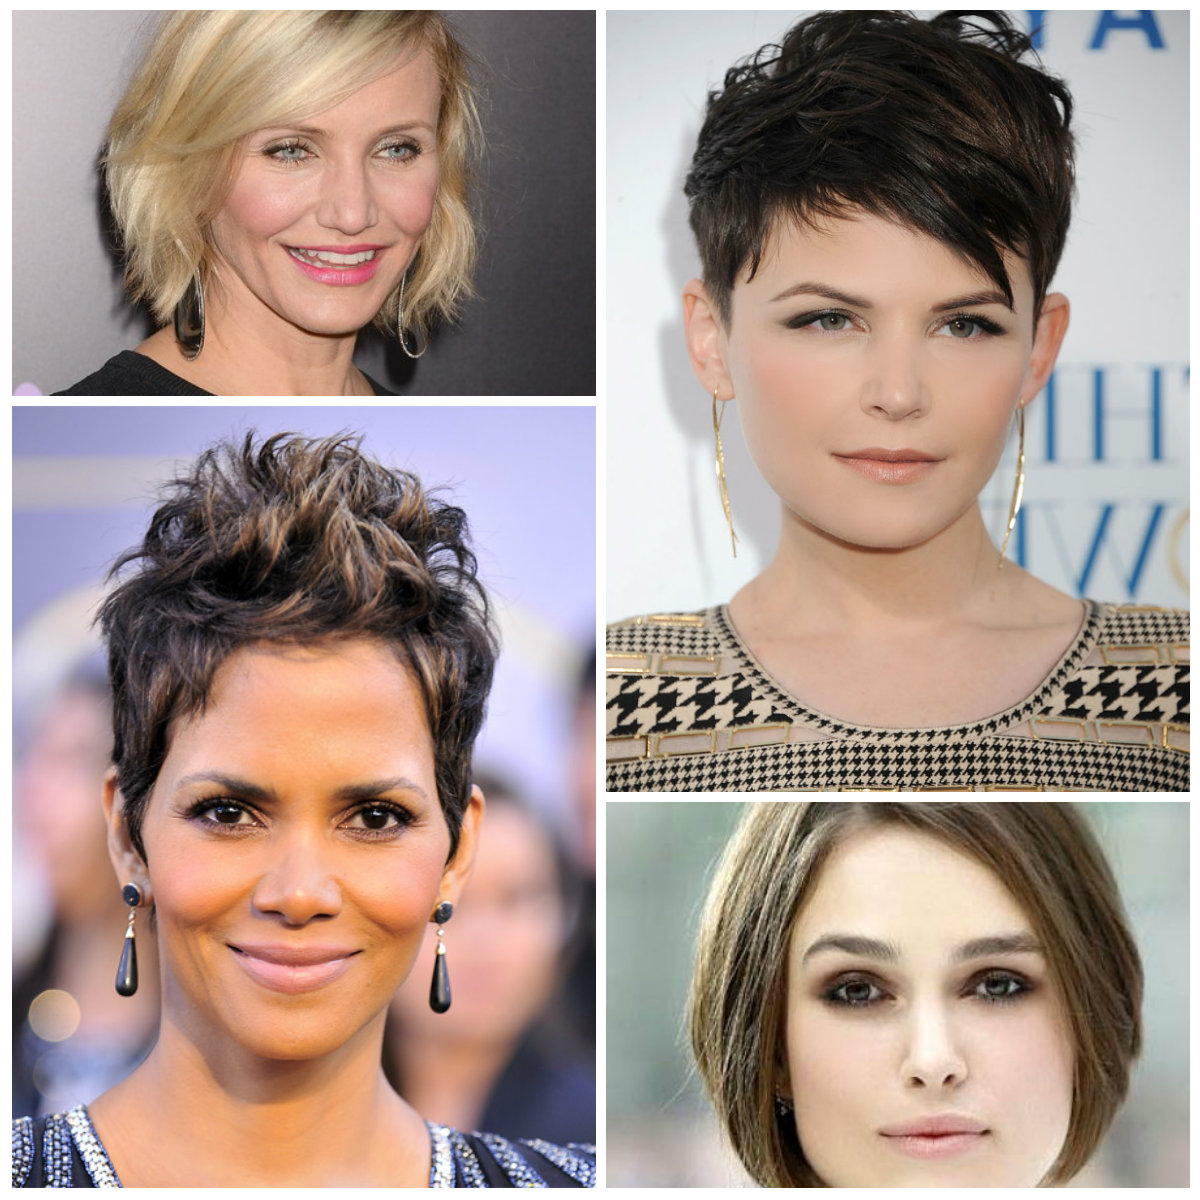 Find Out Full Gallery Of Unique Short Hair For Oval Face 2017 Regarding Oval Face Short Hair (View 10 of 25)